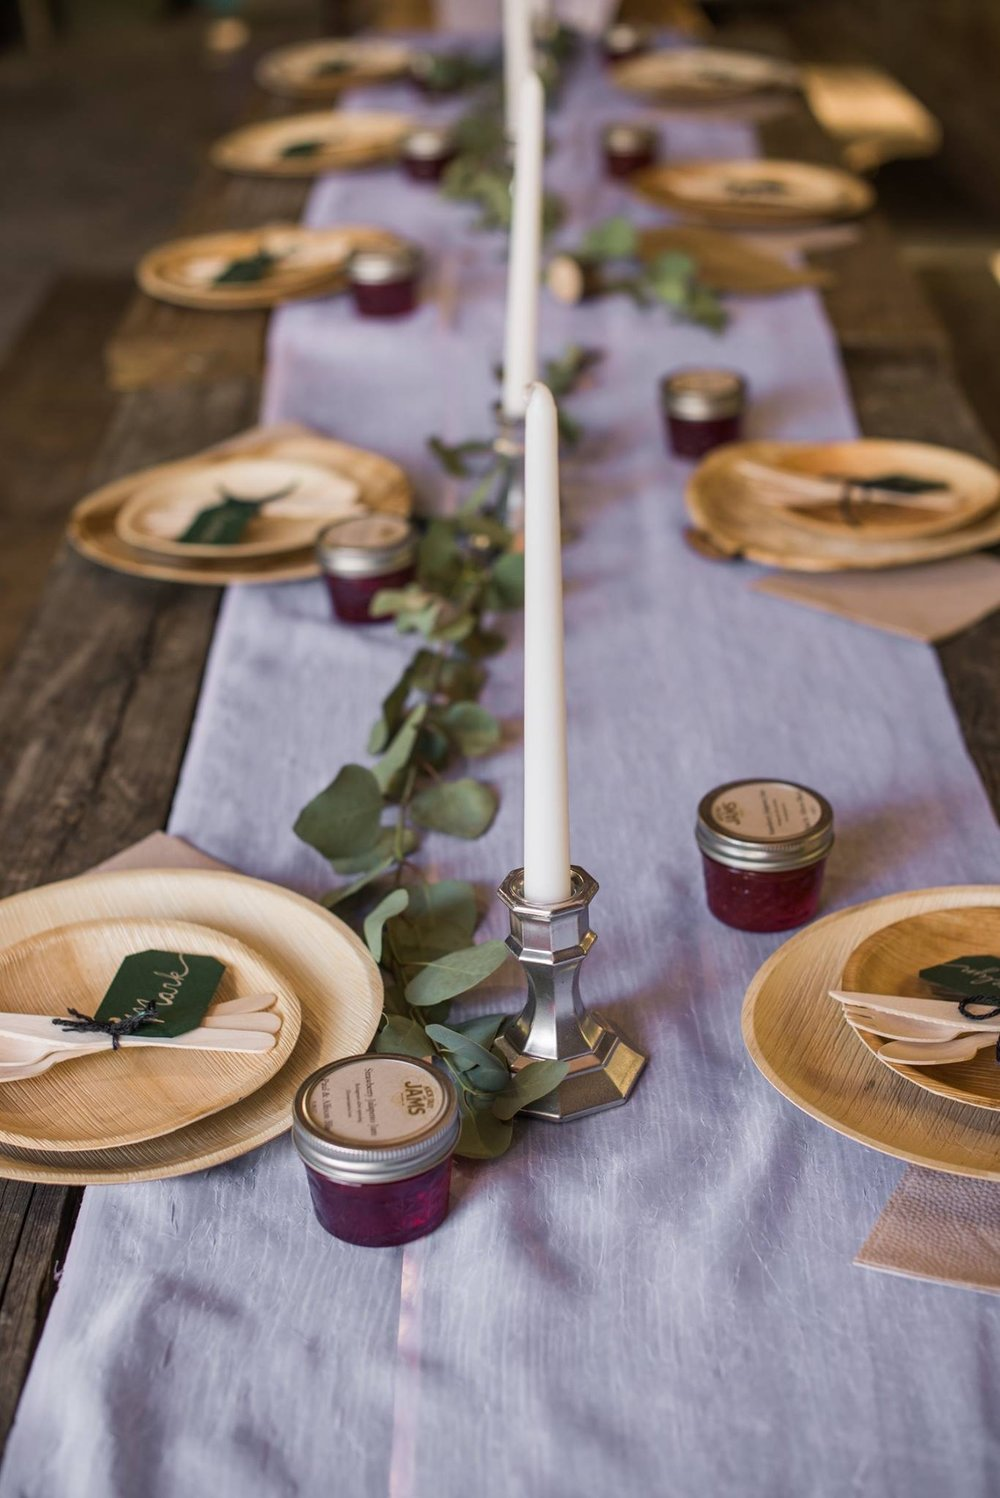 Our jams as wedding favors. Photo by Angie English Photography.